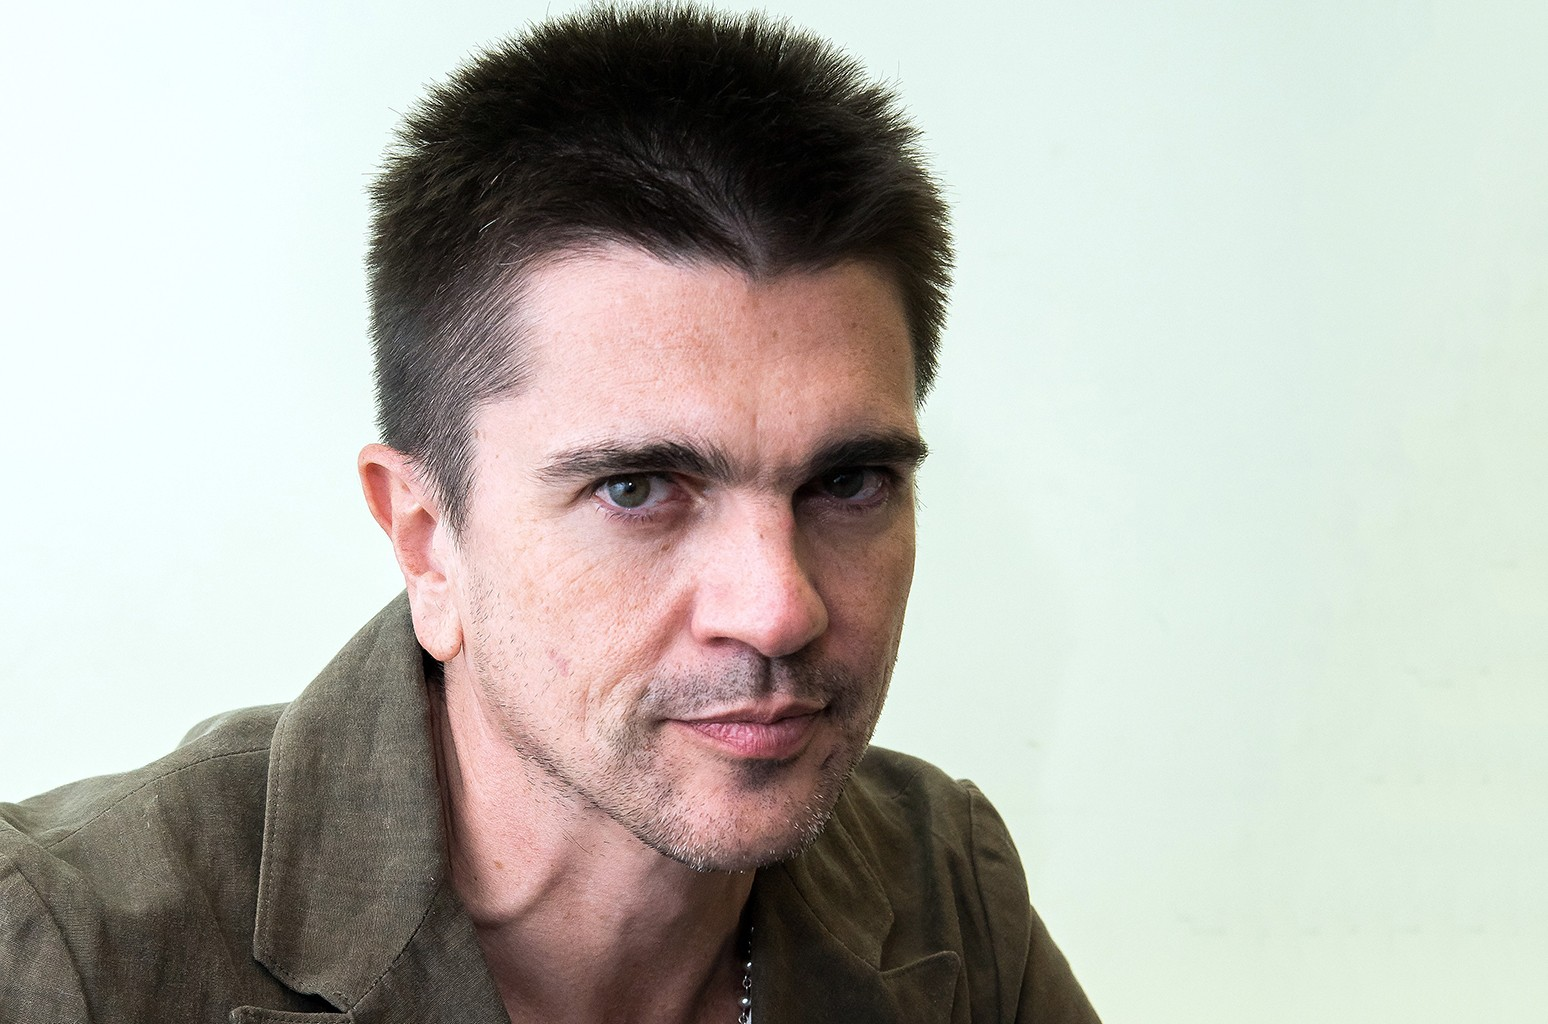 Juanes photographed on March 7, 2017 in New York City.